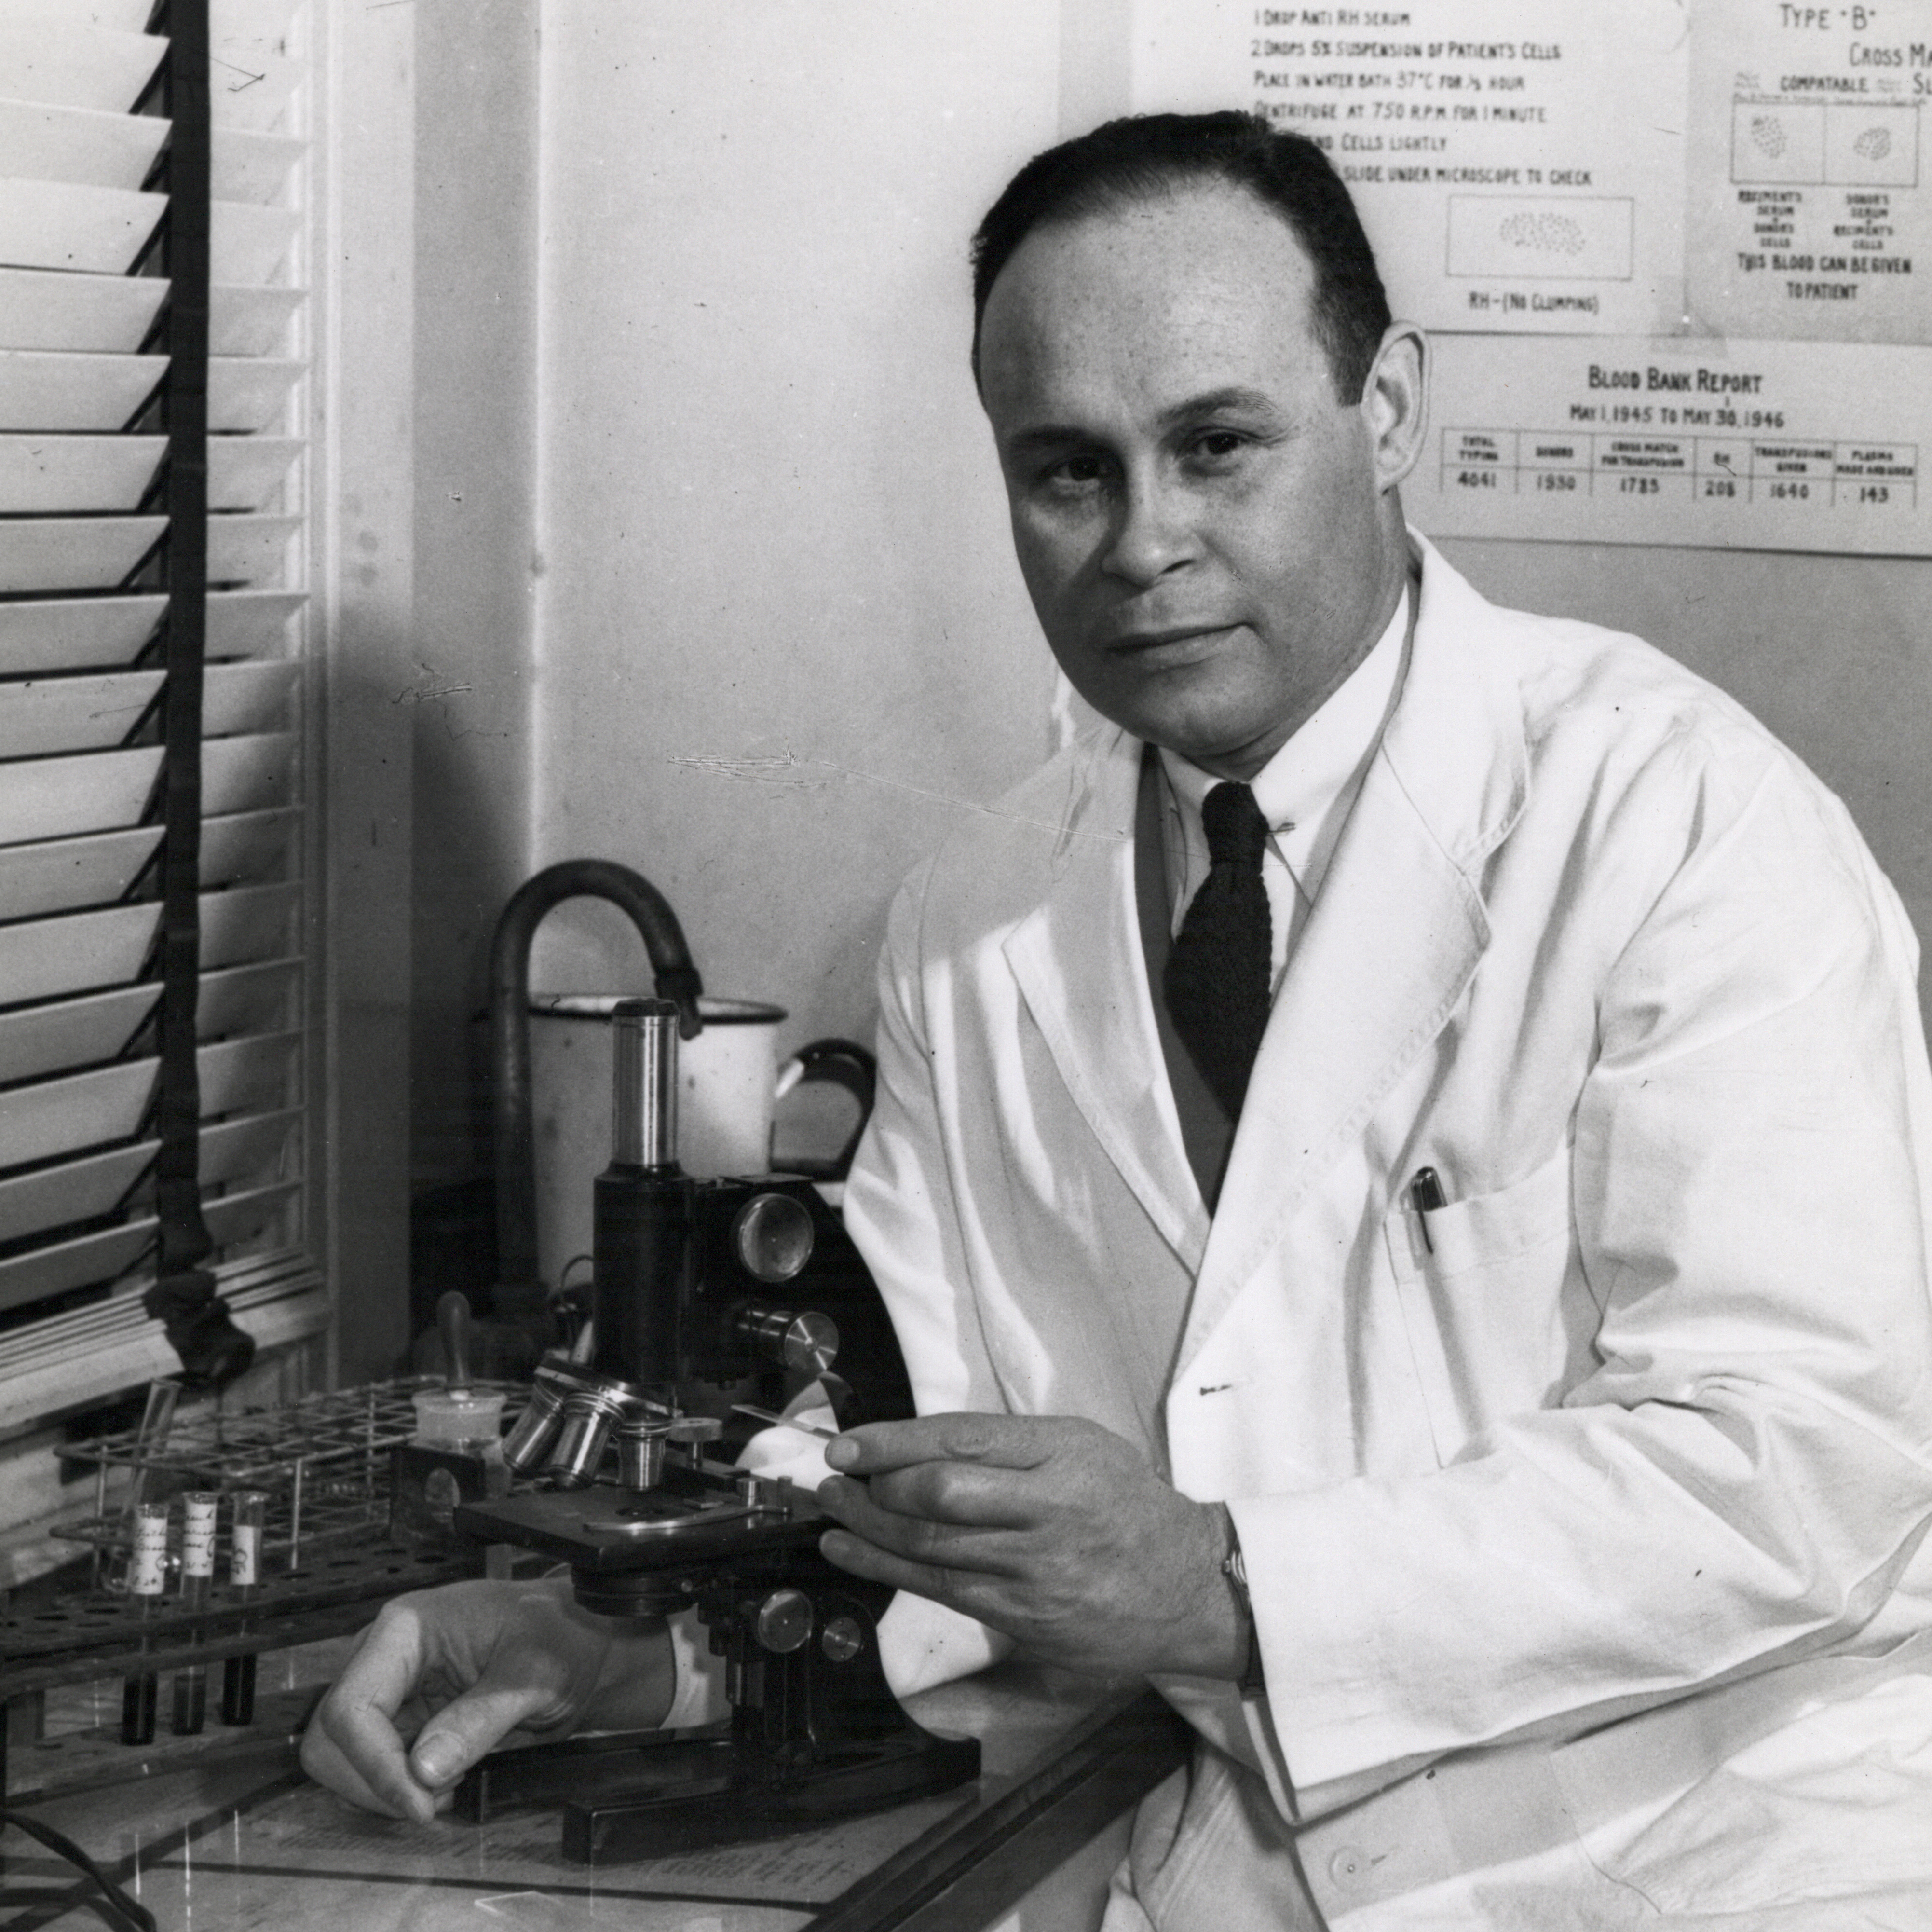 Portrait of Dr. Charles Drew